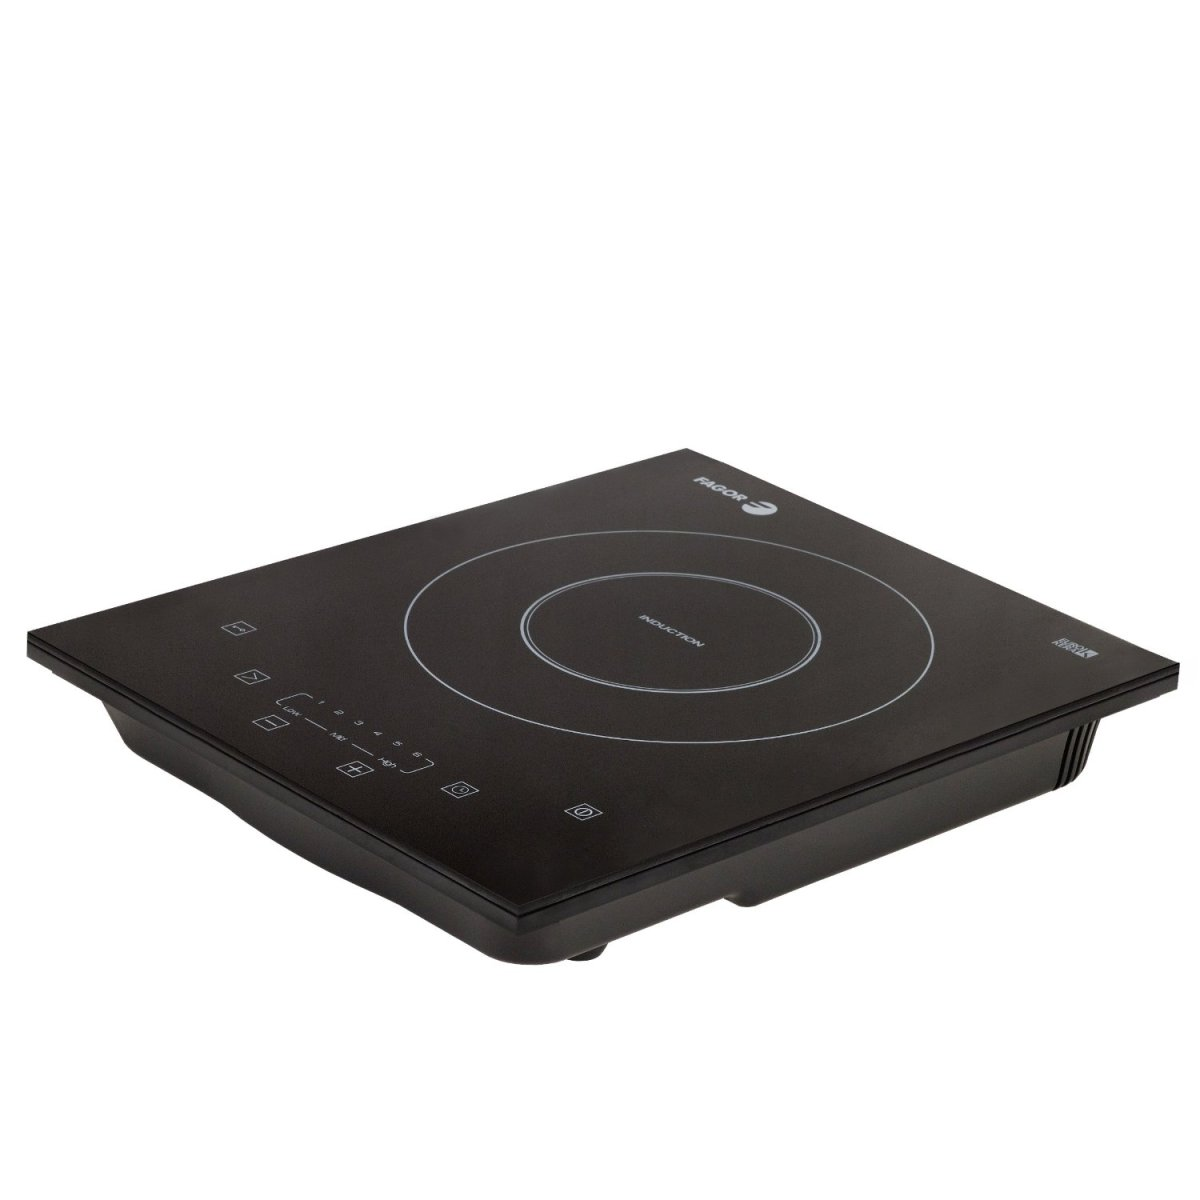 Fagor 670040240 Model 110-Volt Portable Induction Cooktop – Review